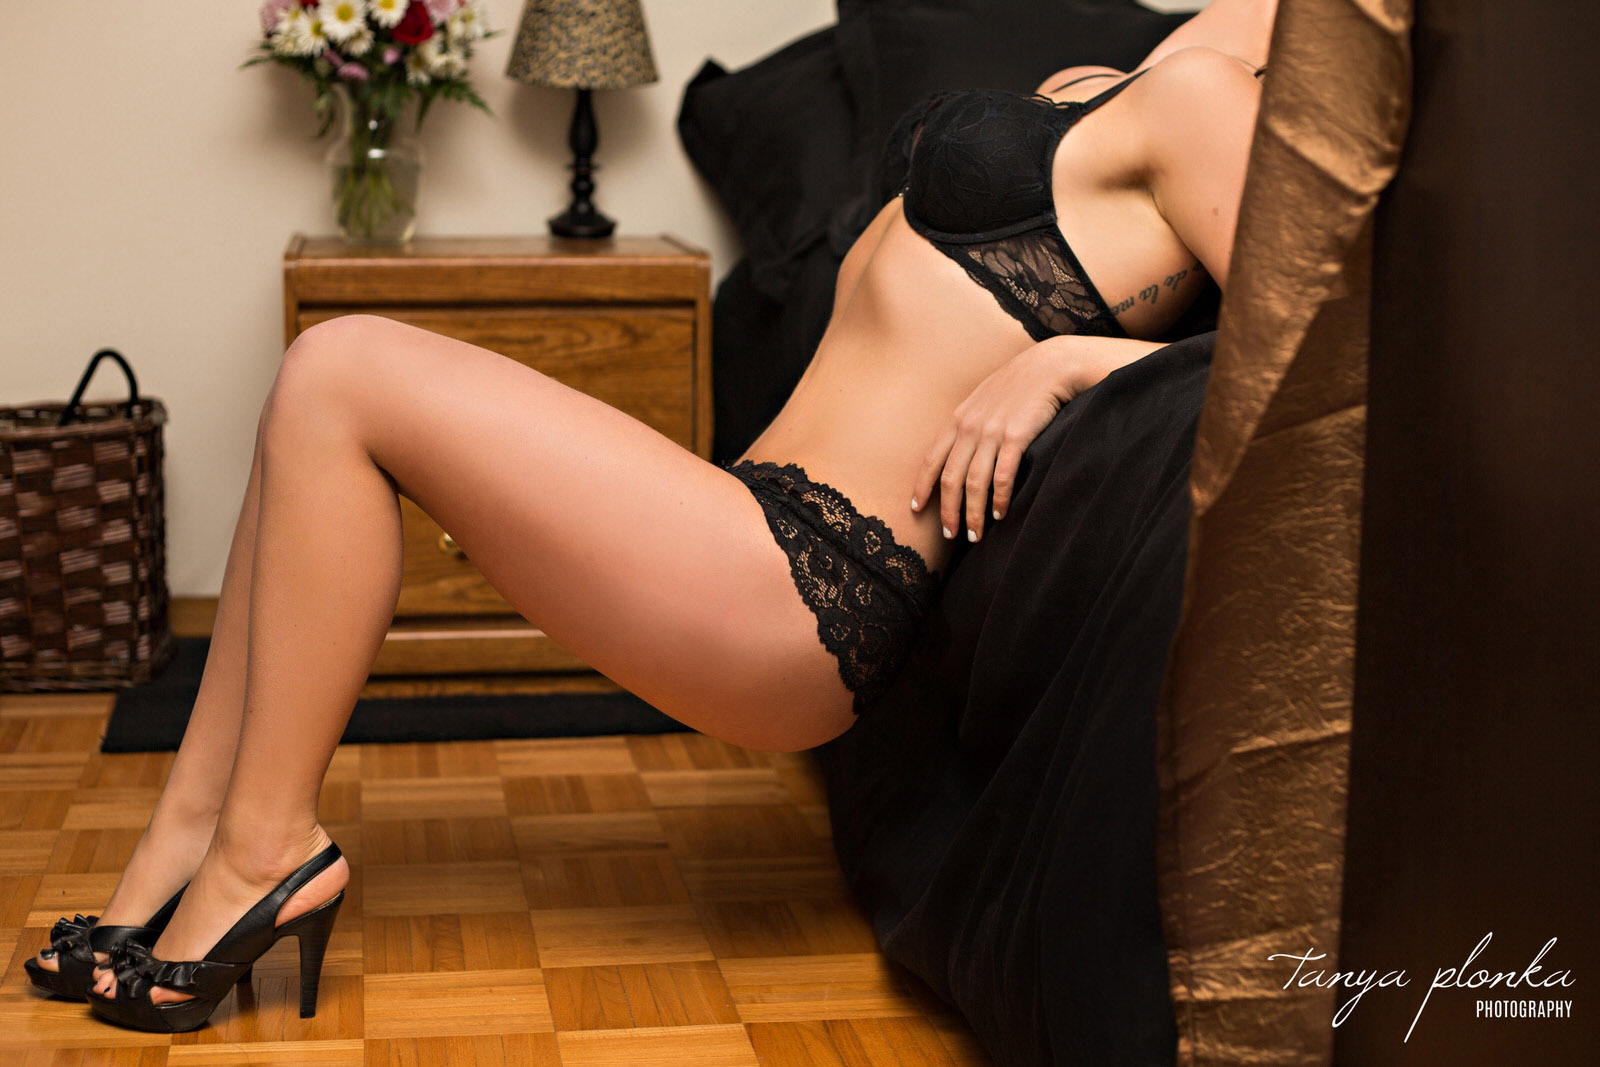 cropped photo of woman leaning on bed in black lace lingerie